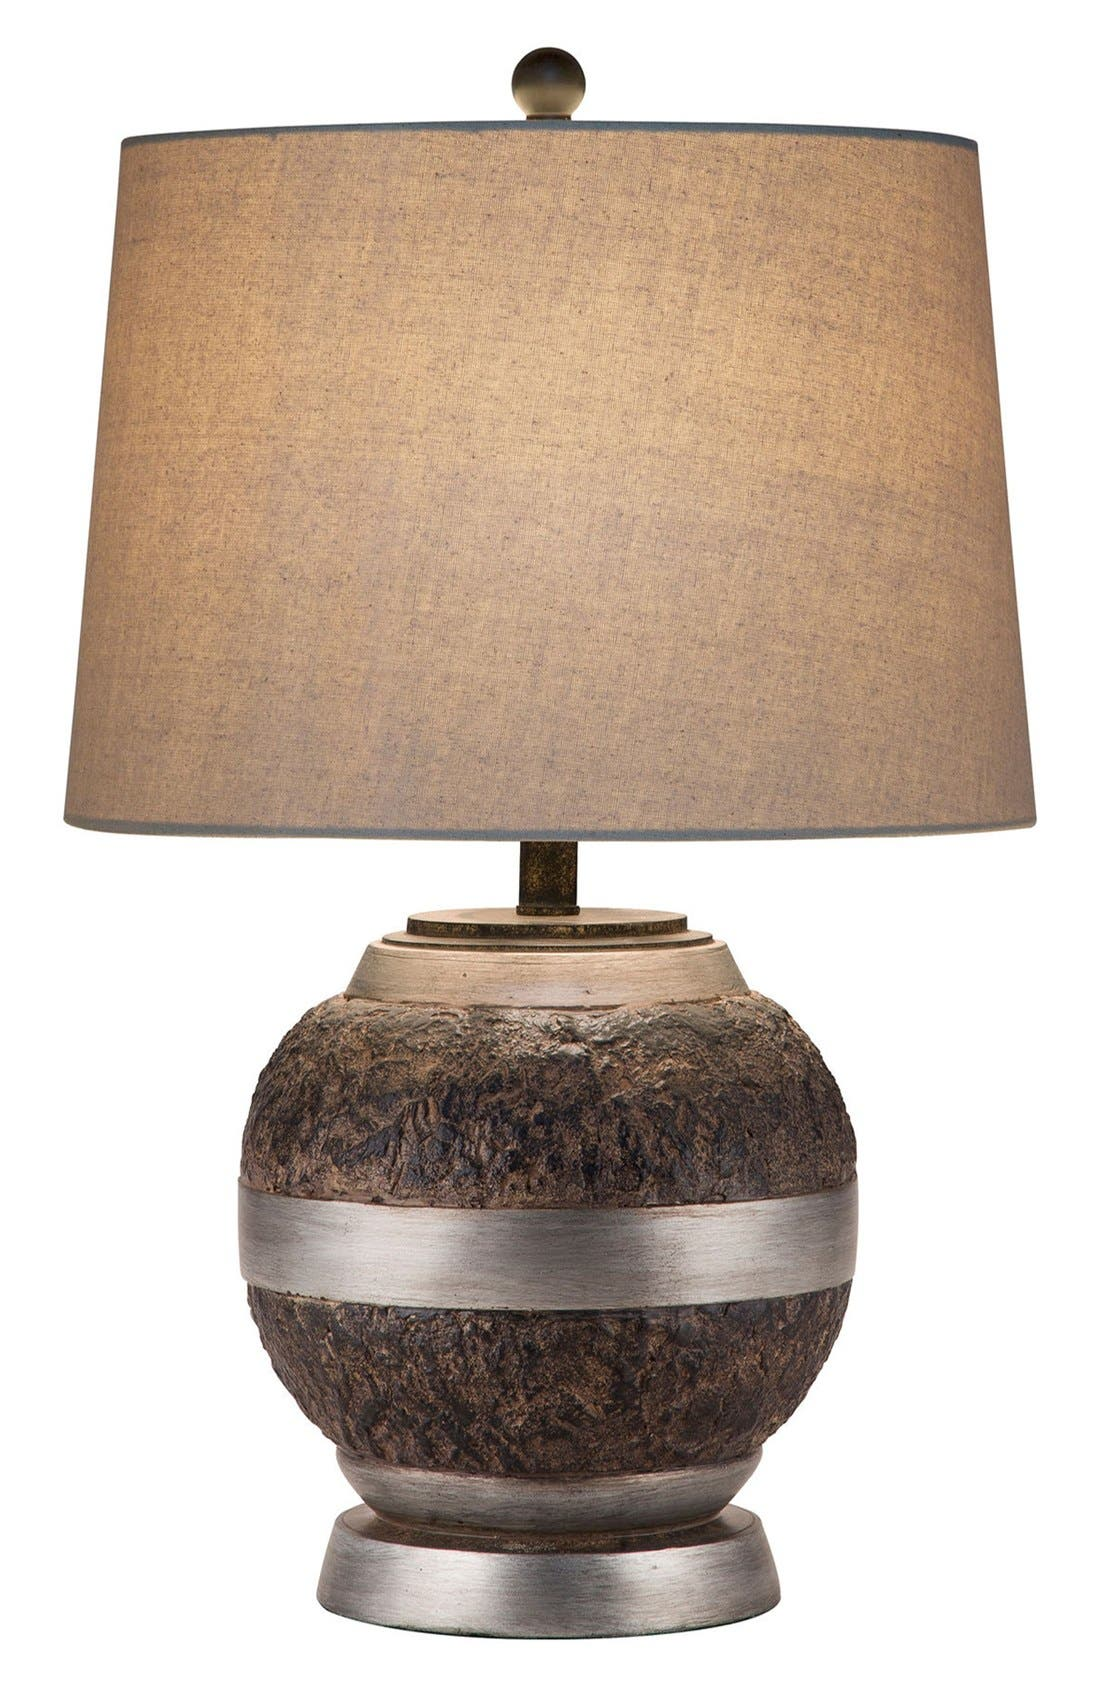 JAlexander Textured Bronze Finish Table Lamp